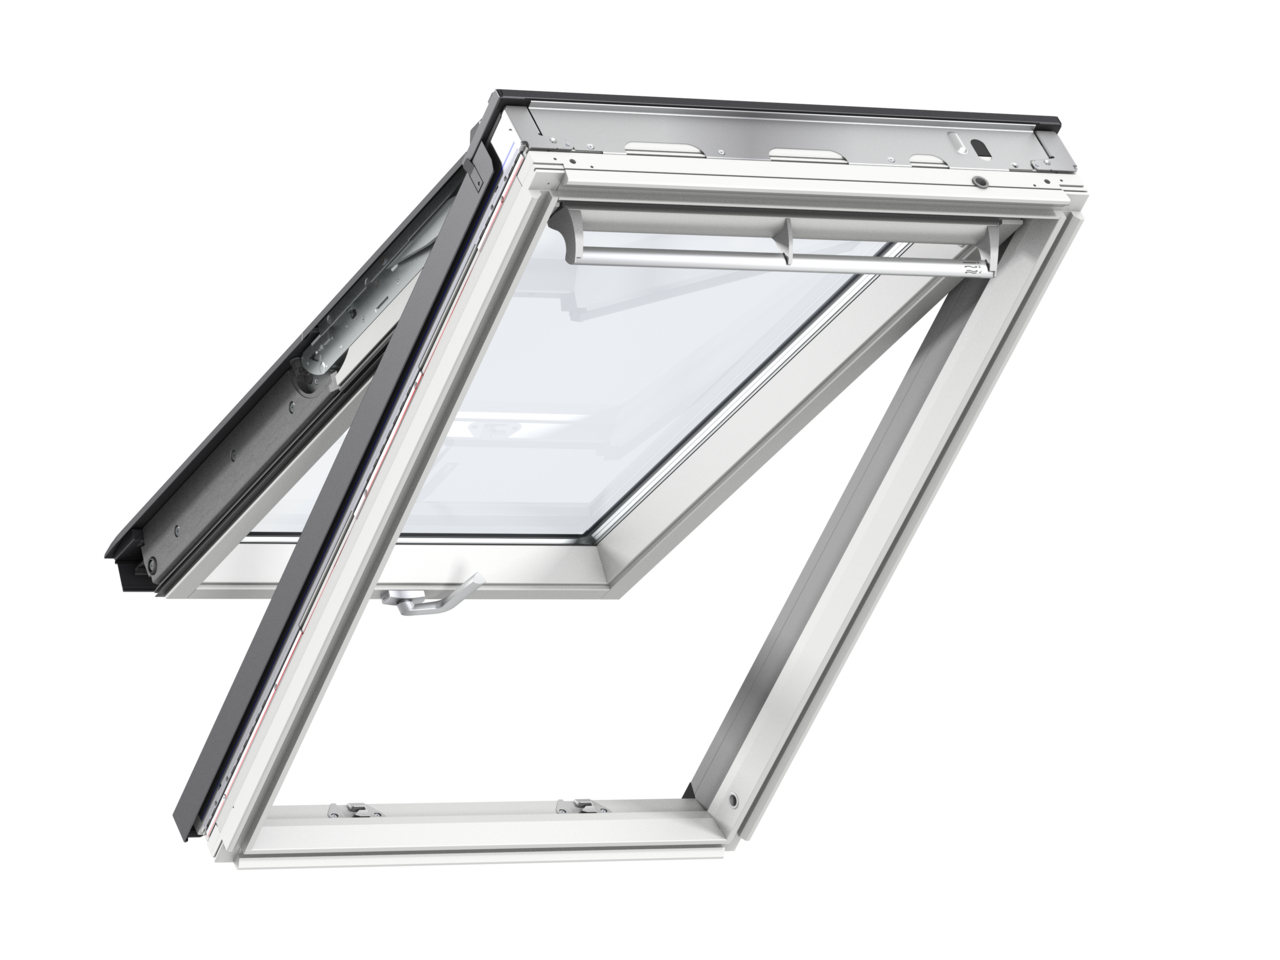 Velux GPL MK06 780 x 1180mm Top Hung 60Pane Roof Window - White Painted